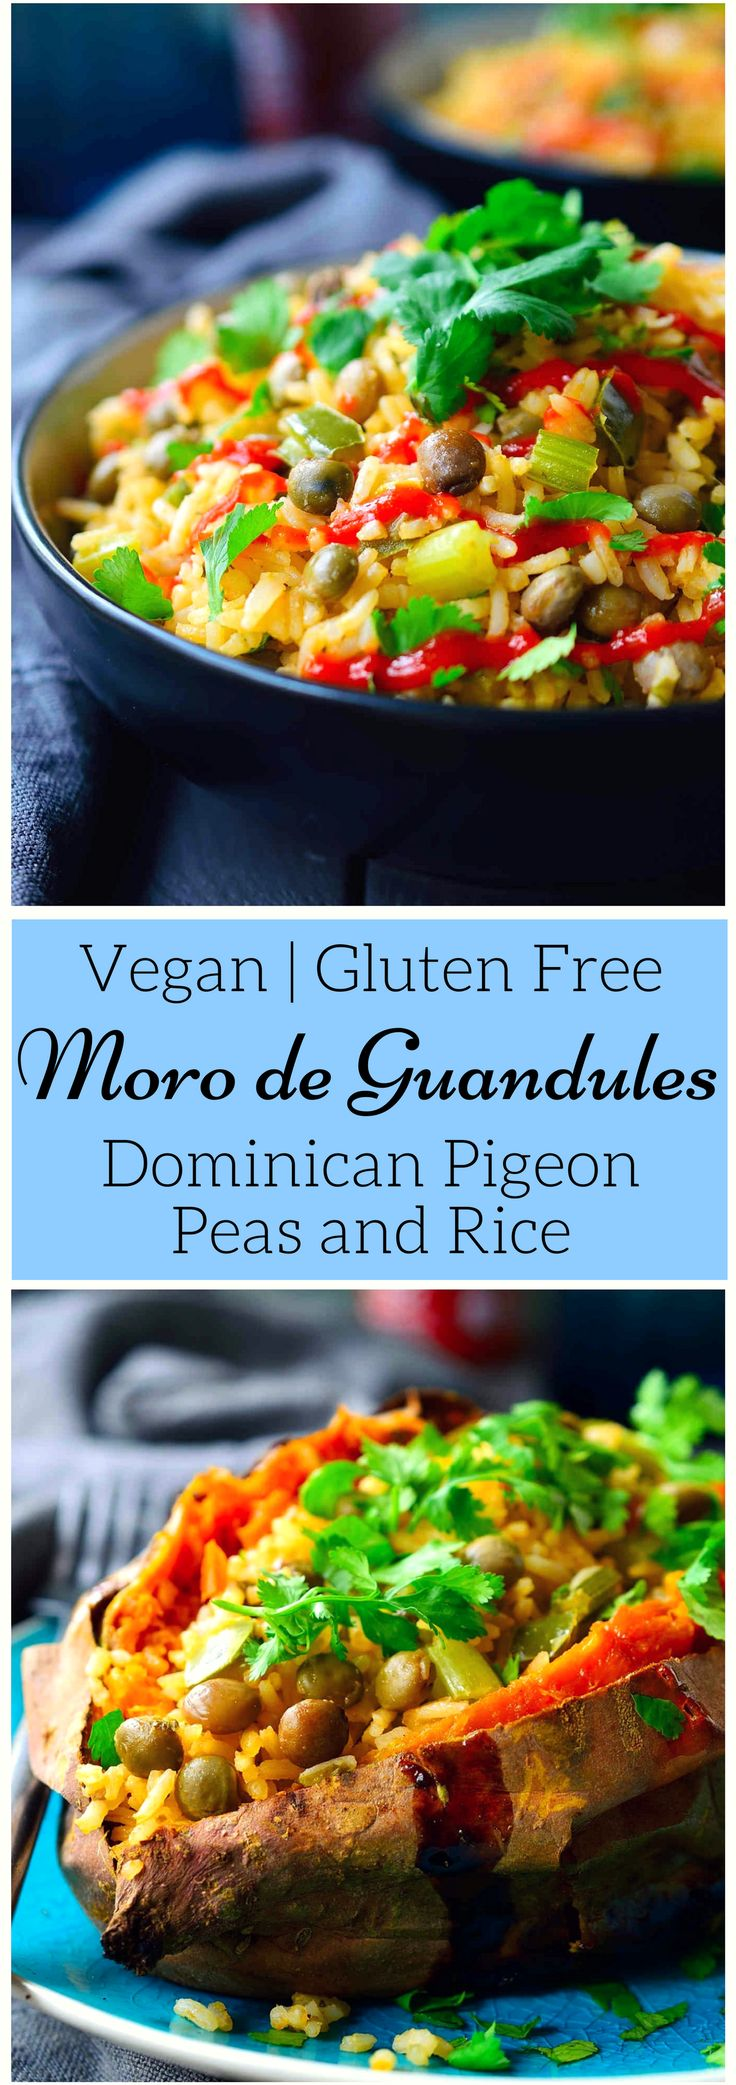 This recipe for moro de guandules is a dish from the Dominican Republic featuring pigeon peas and rice cooked with vegetables in a coconut milk broth. It's quick to prepare in just 30 minutes and you only need one pot. It's great served as a side dish, or you can make it a vegan or vegetarian main dish by serving it stuffed inside a roasted sweet potato!